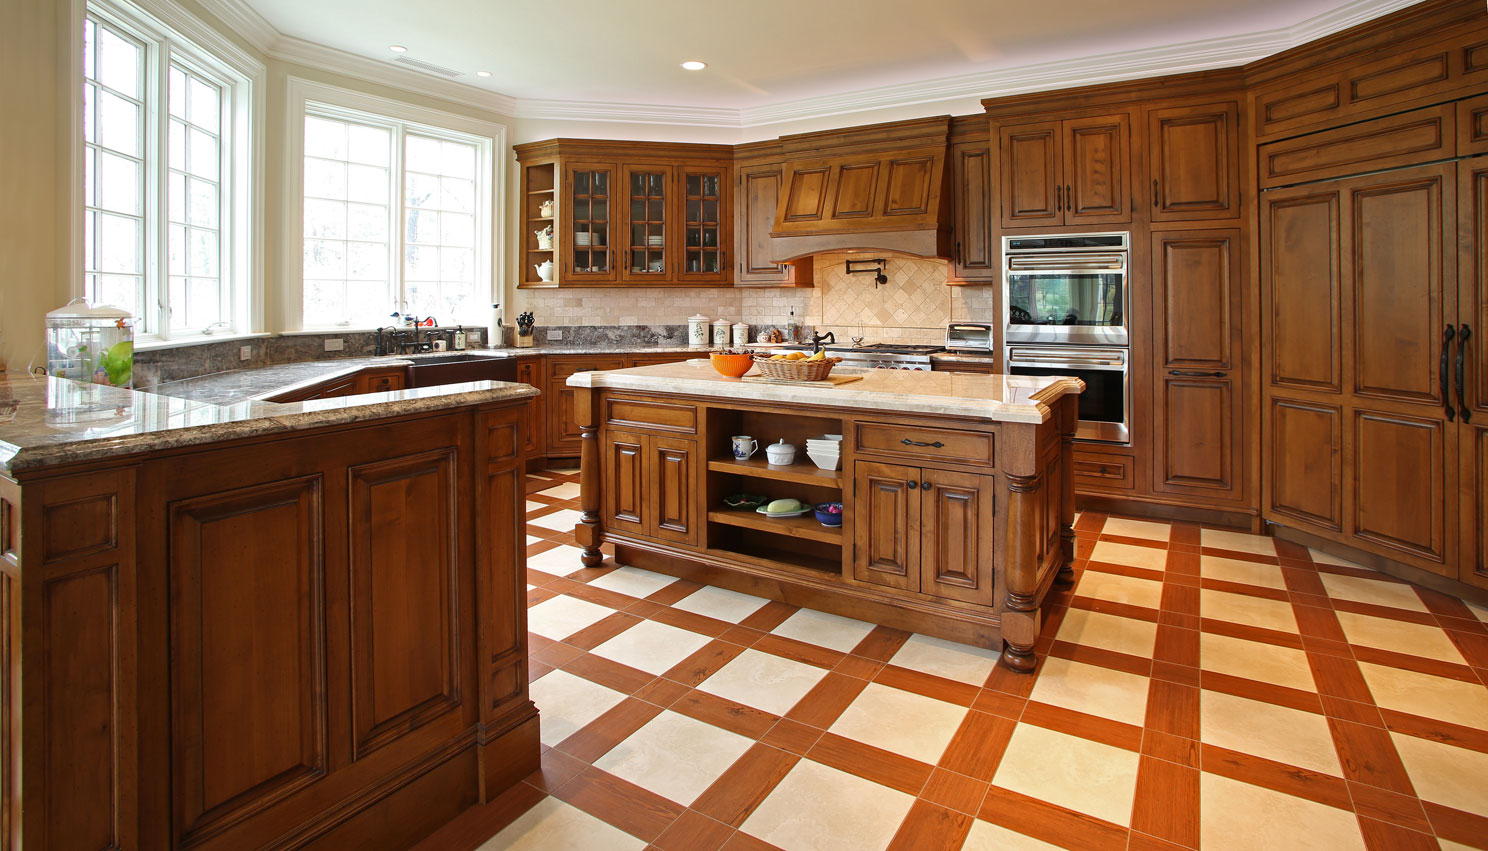 Custom Cabinets Washington Dc Miles Enterprises Fine Custom Cabinetry In Baltimore Md And